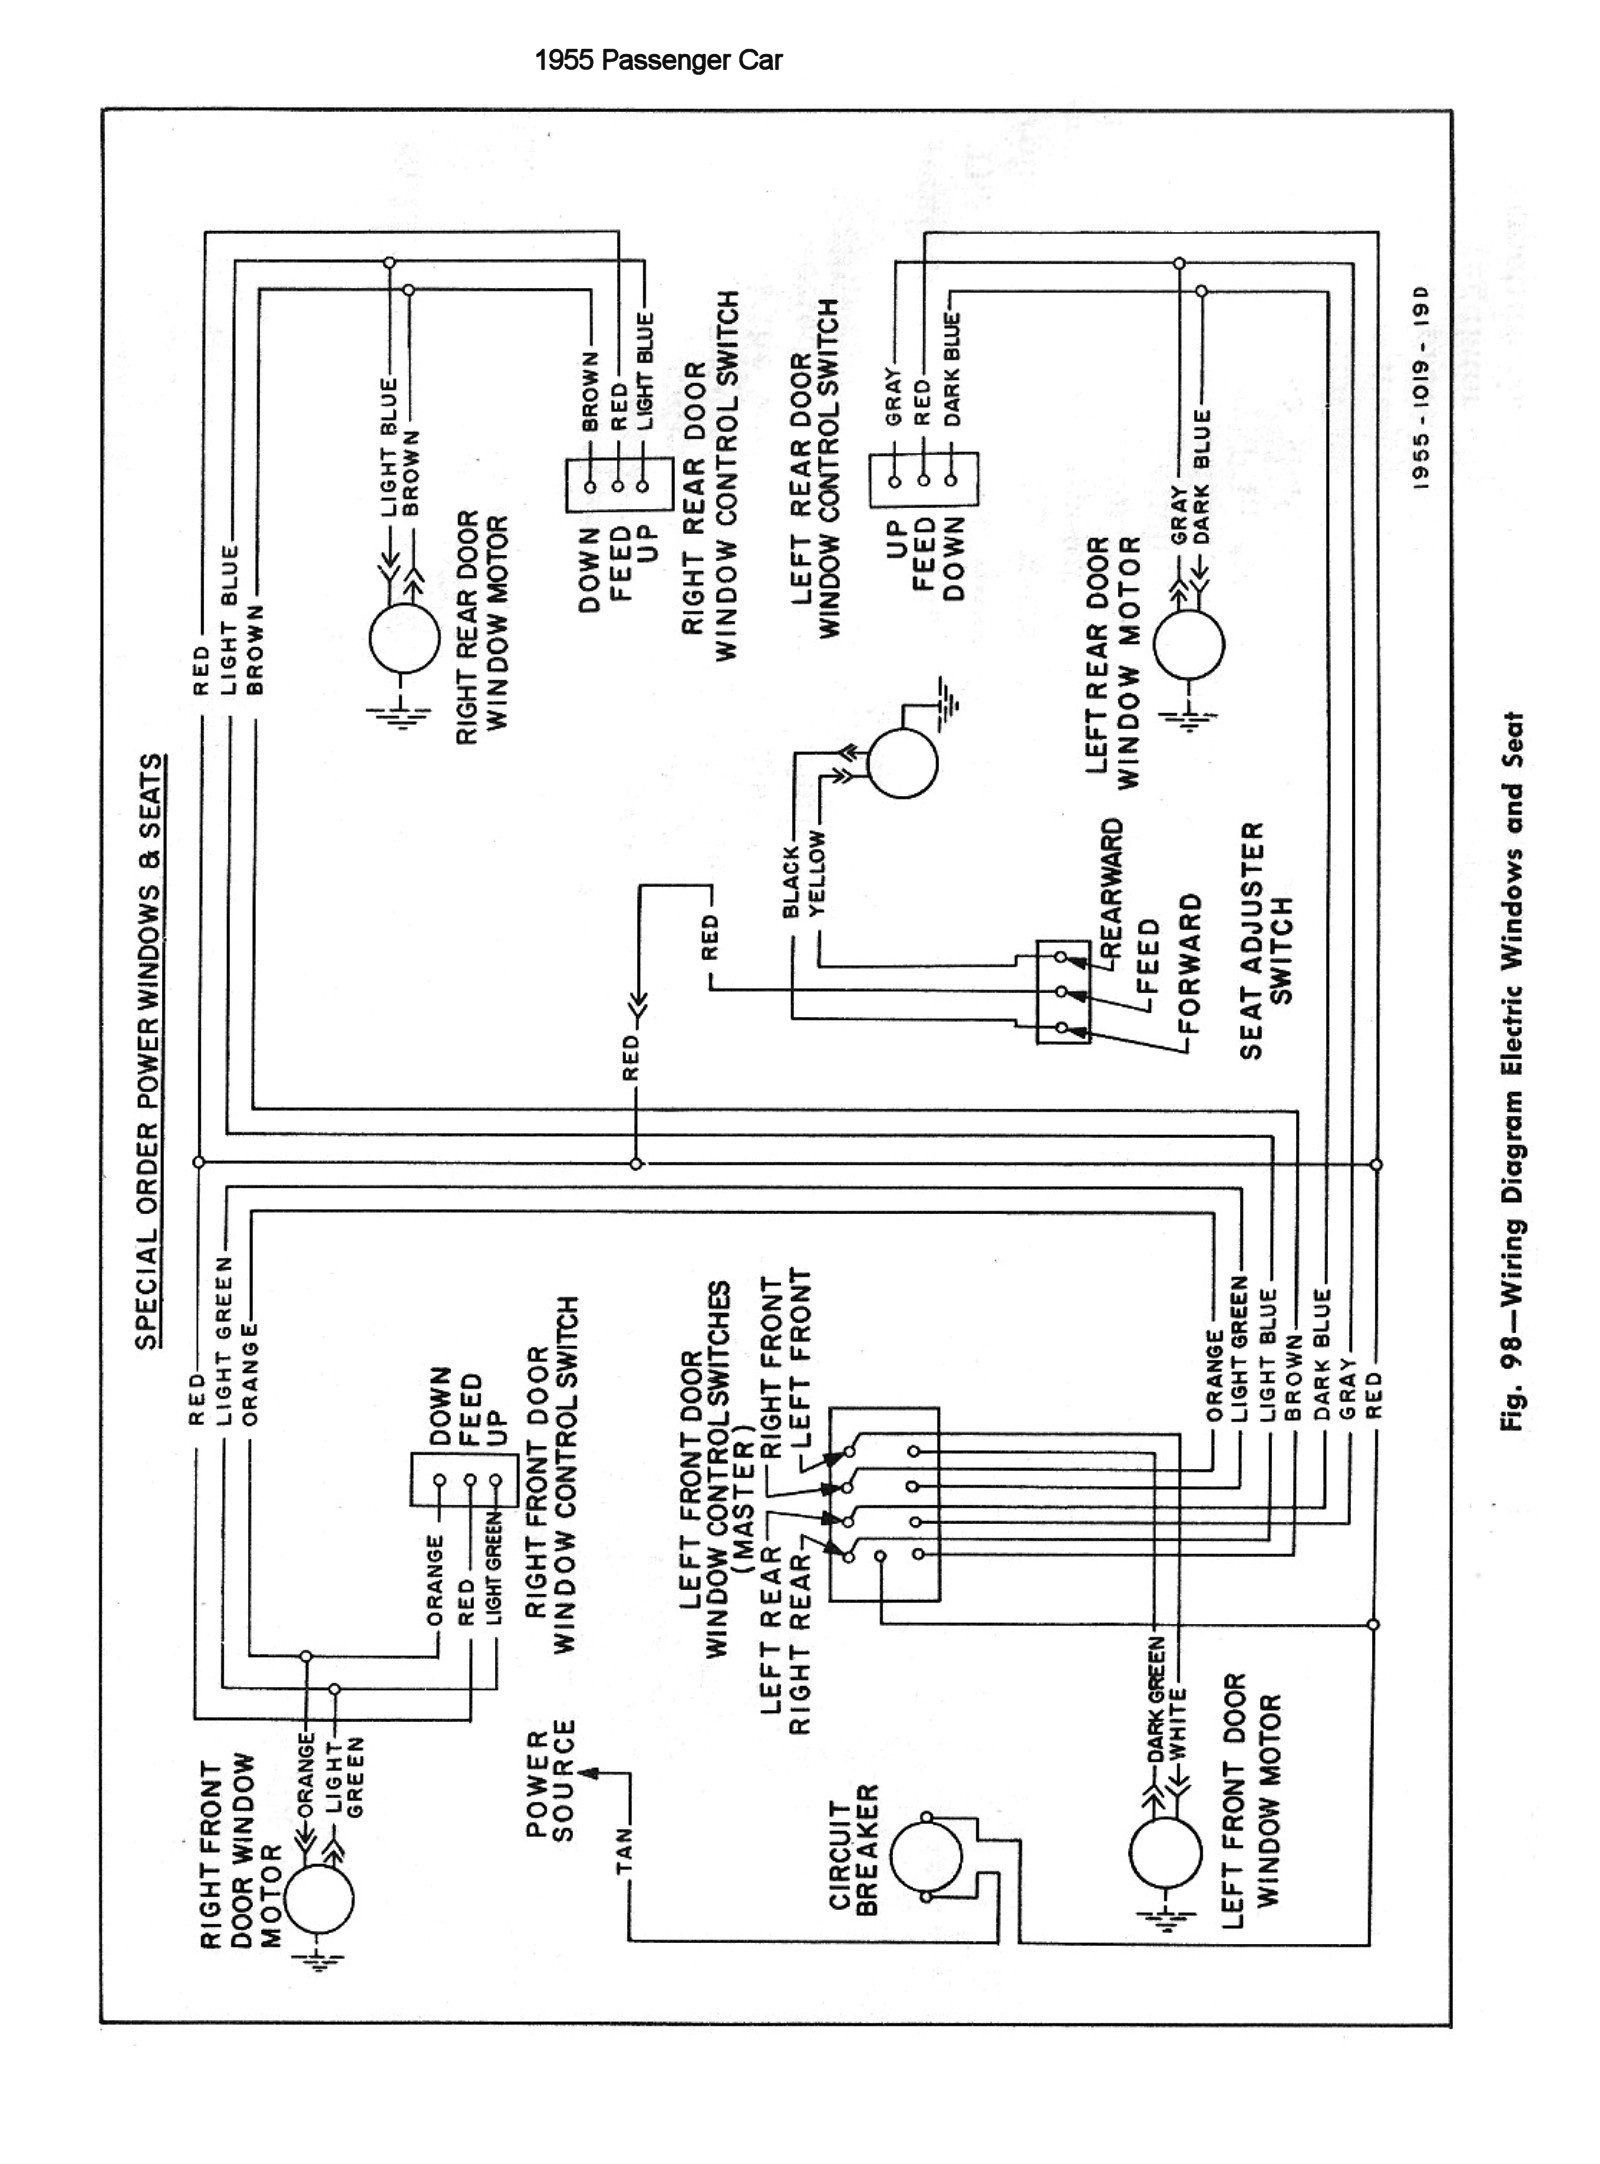 small resolution of 1955 chevy turn signal wiring diagram wiringdiagram org1955 chevy wiring 10